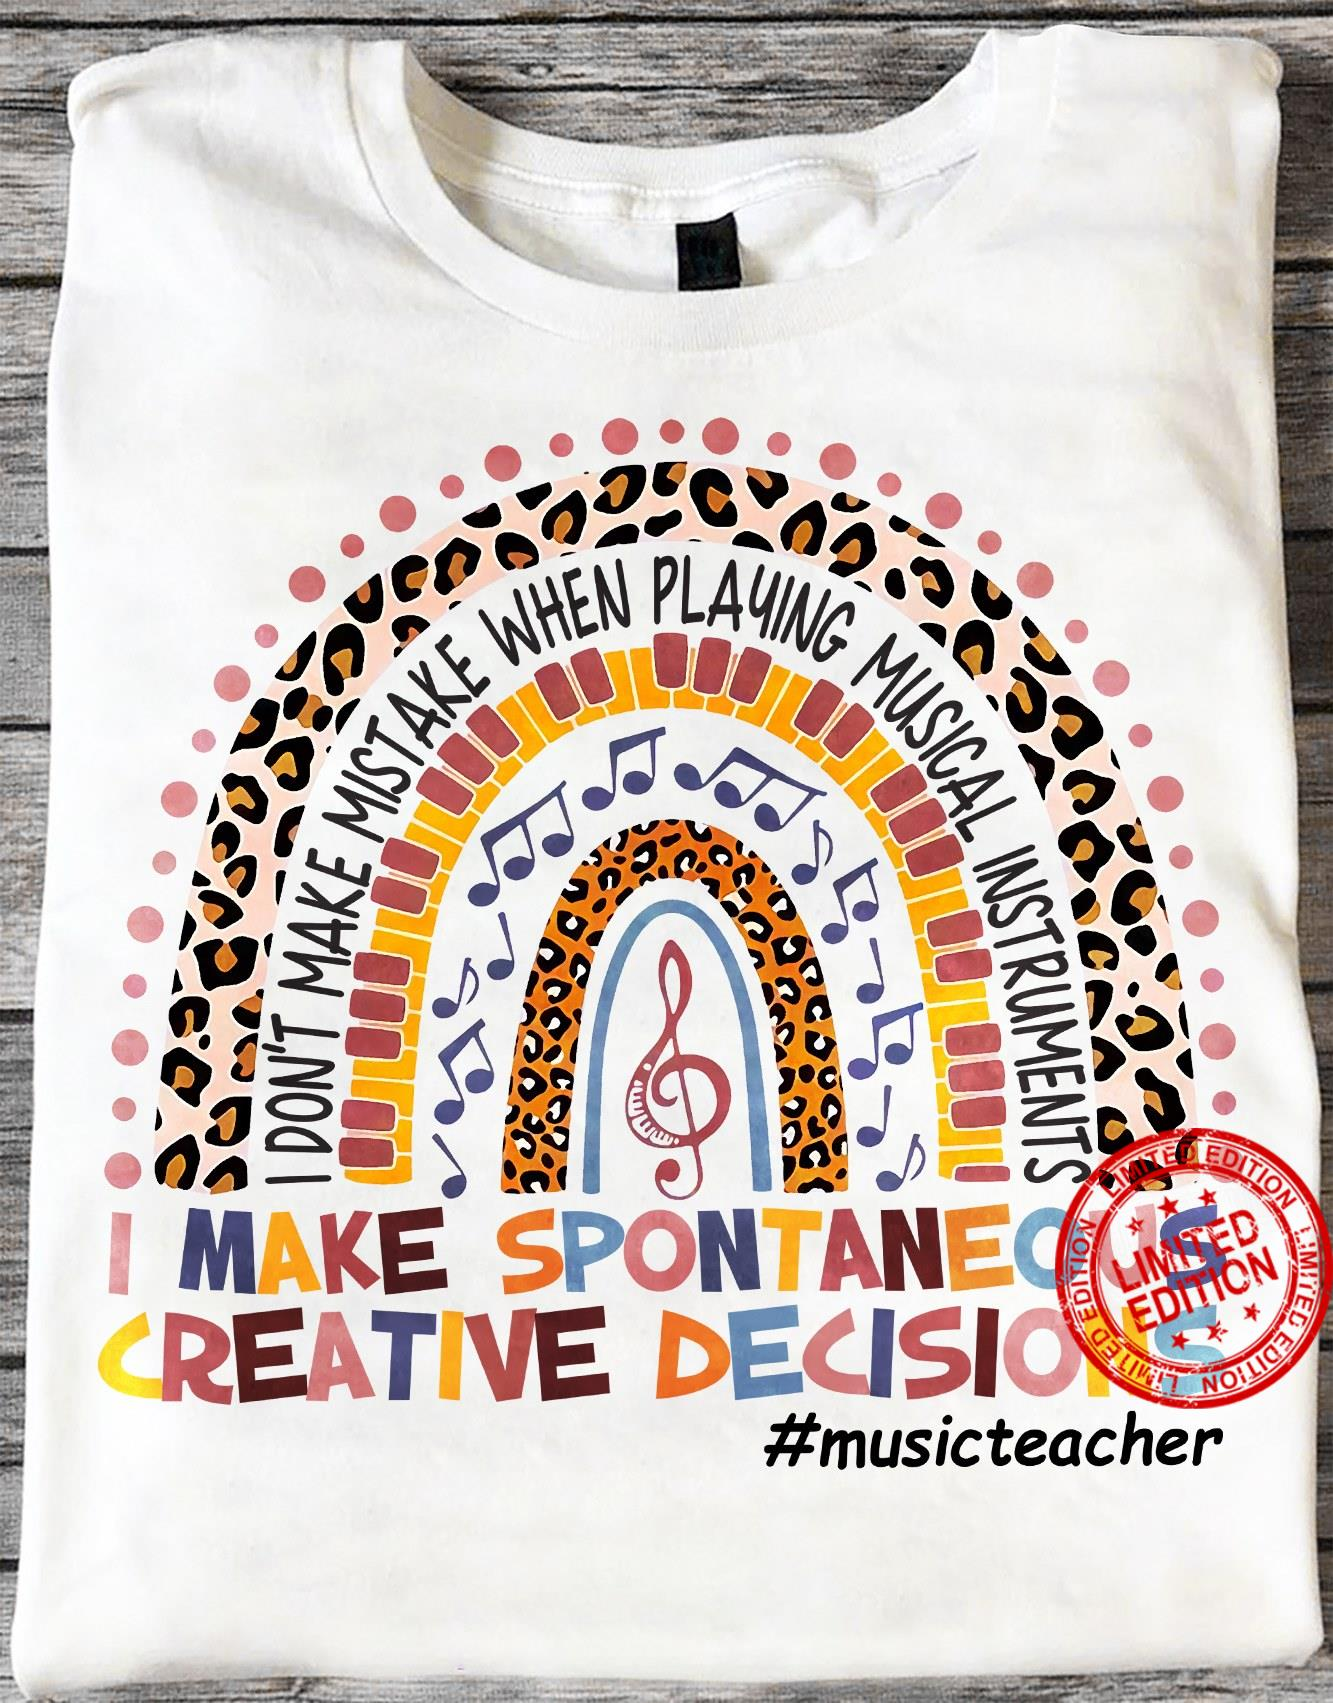 I Don't Make Mistake When Playing Musical Instruments I Make Spontaneous Creative Decisions Shirt